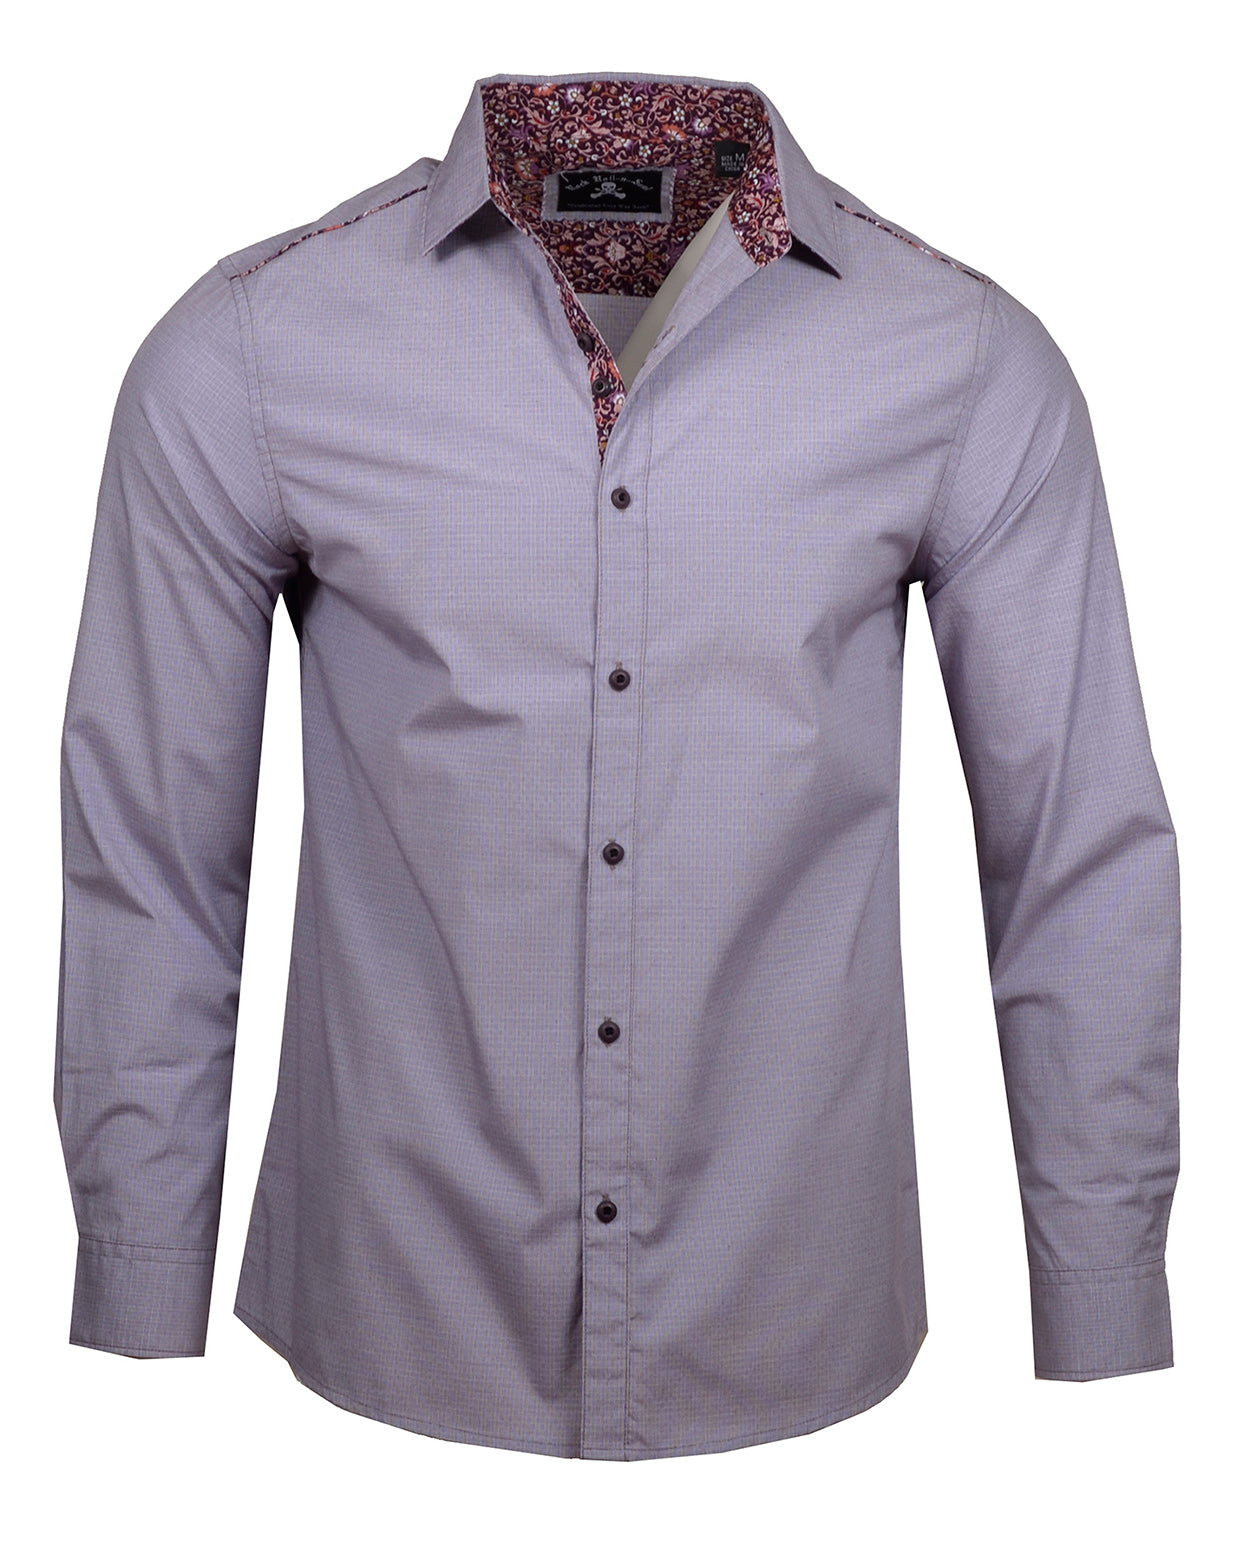 Men's Casual Fashion Button Up Shirt - Your Love Lilac by Rock Roll n Soul